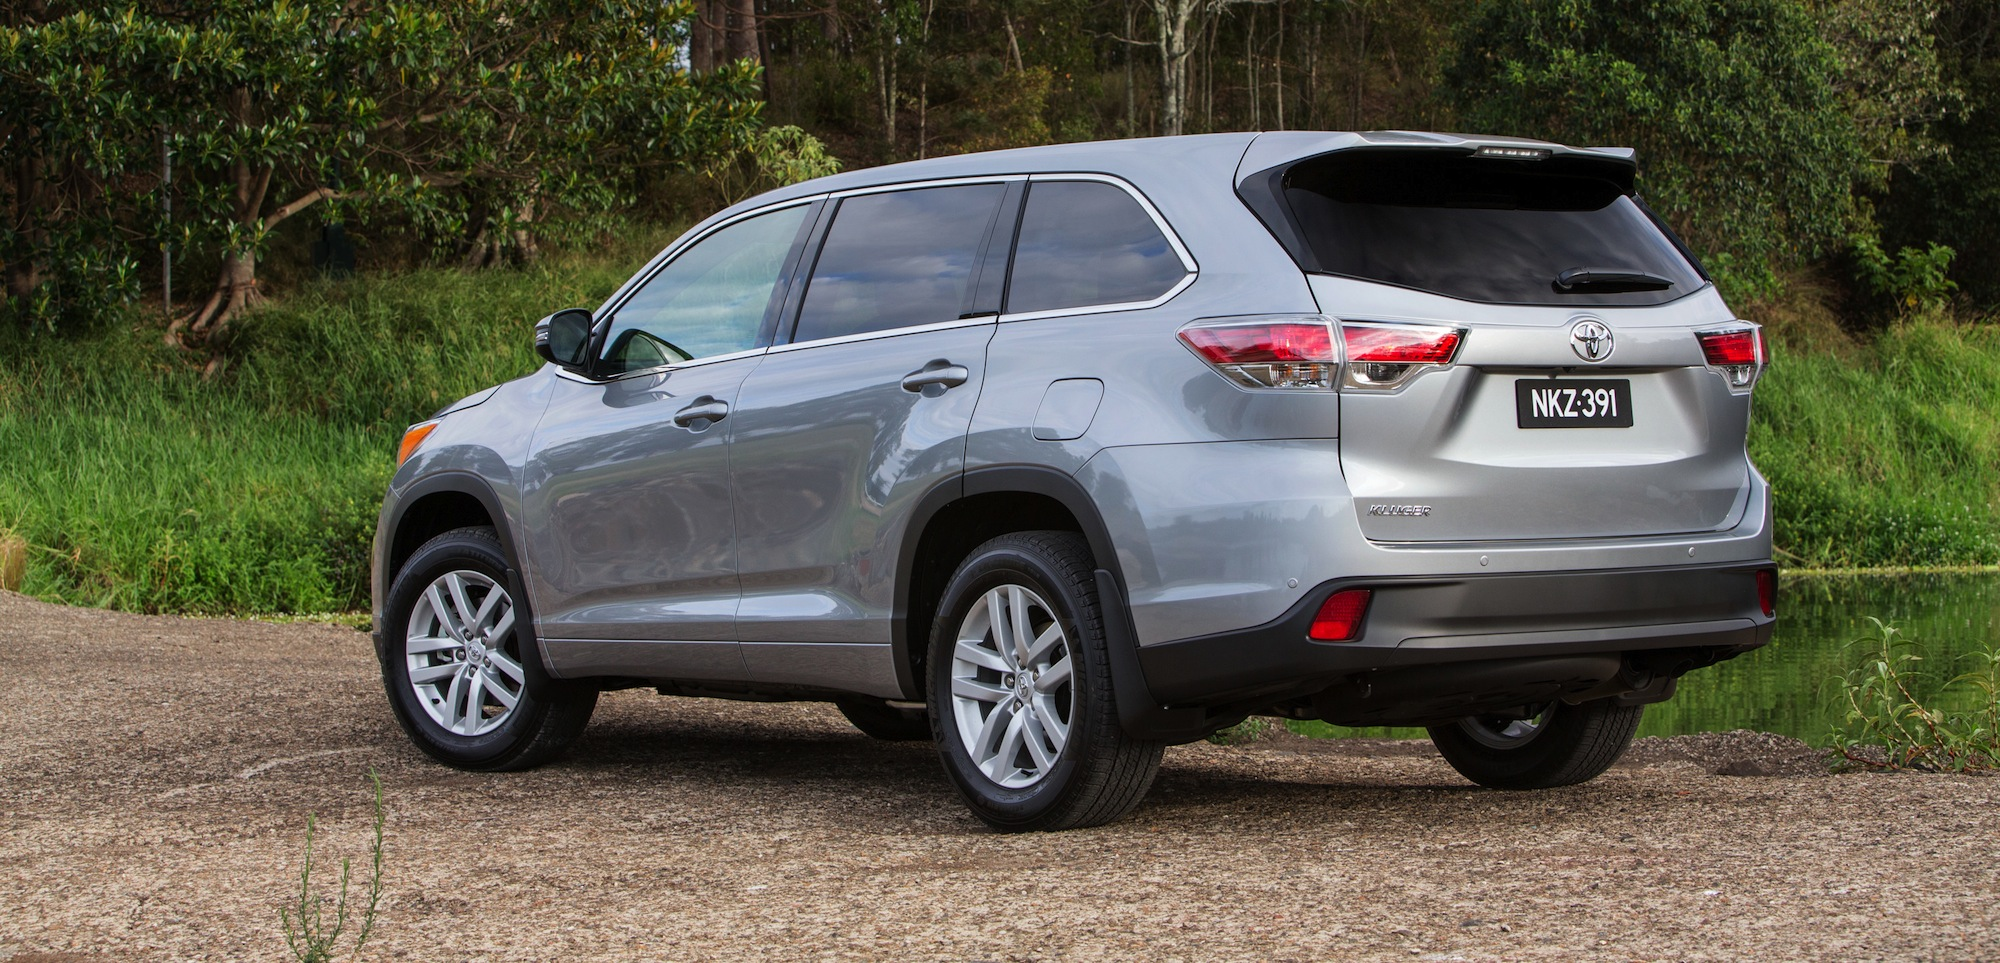 2014 Toyota Kluger Review - Photos